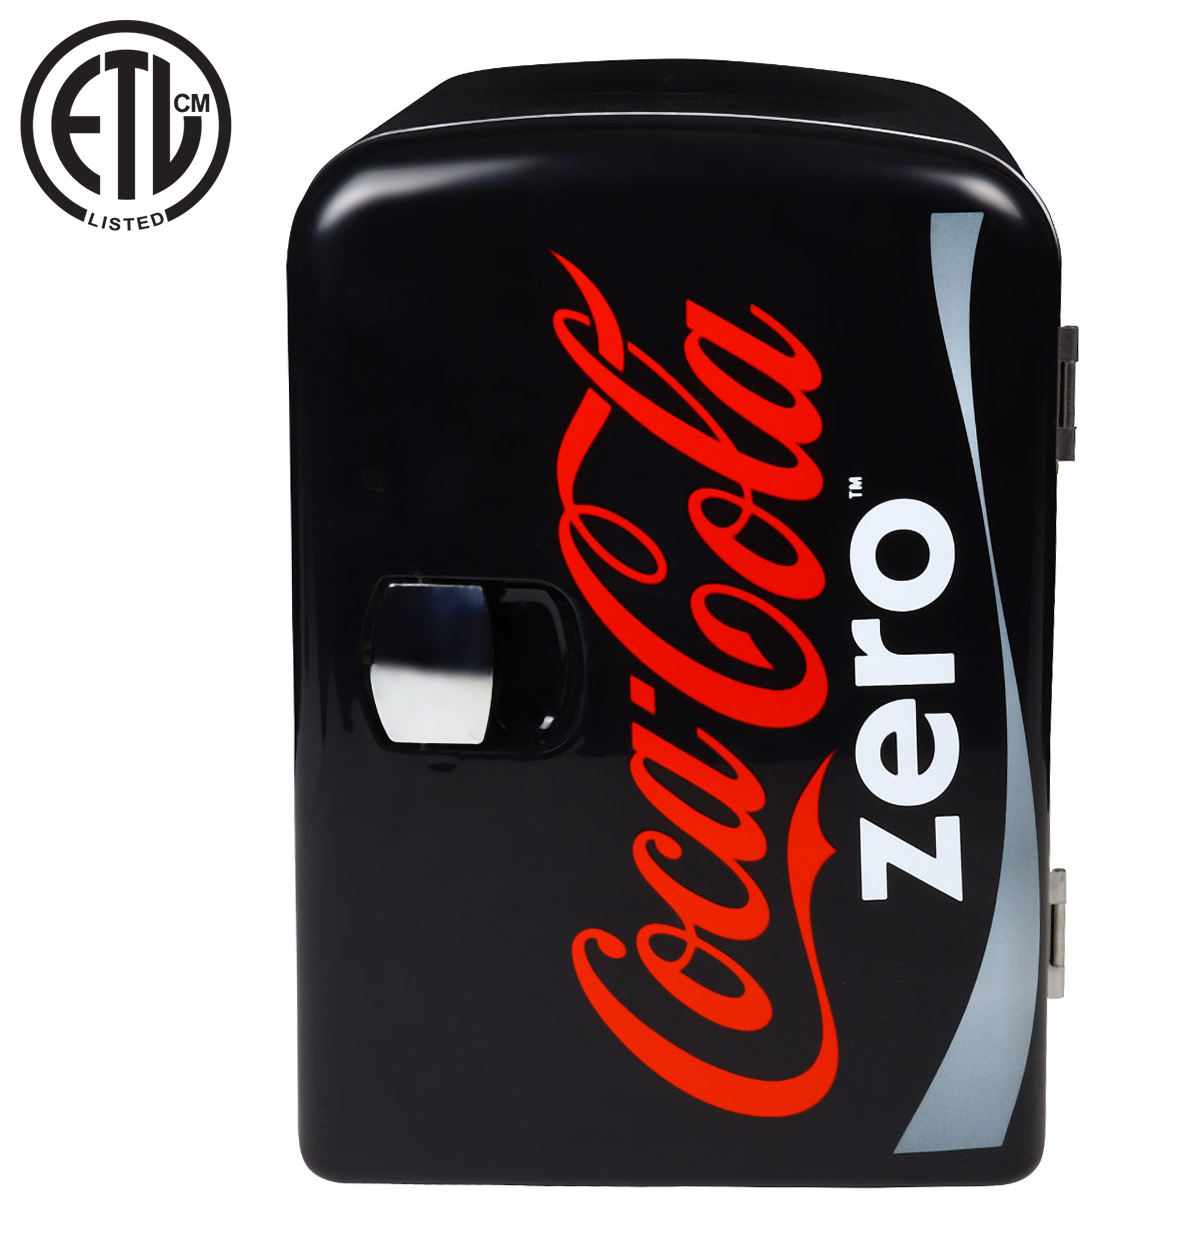 Coca-Cola Zero 4 Liter/6 Can Portable Fridge/Mini Cooler for Food, Beverages, Skincare - Use at Home, Office, Dorm, Car, Boat - AC & DC Plugs Included